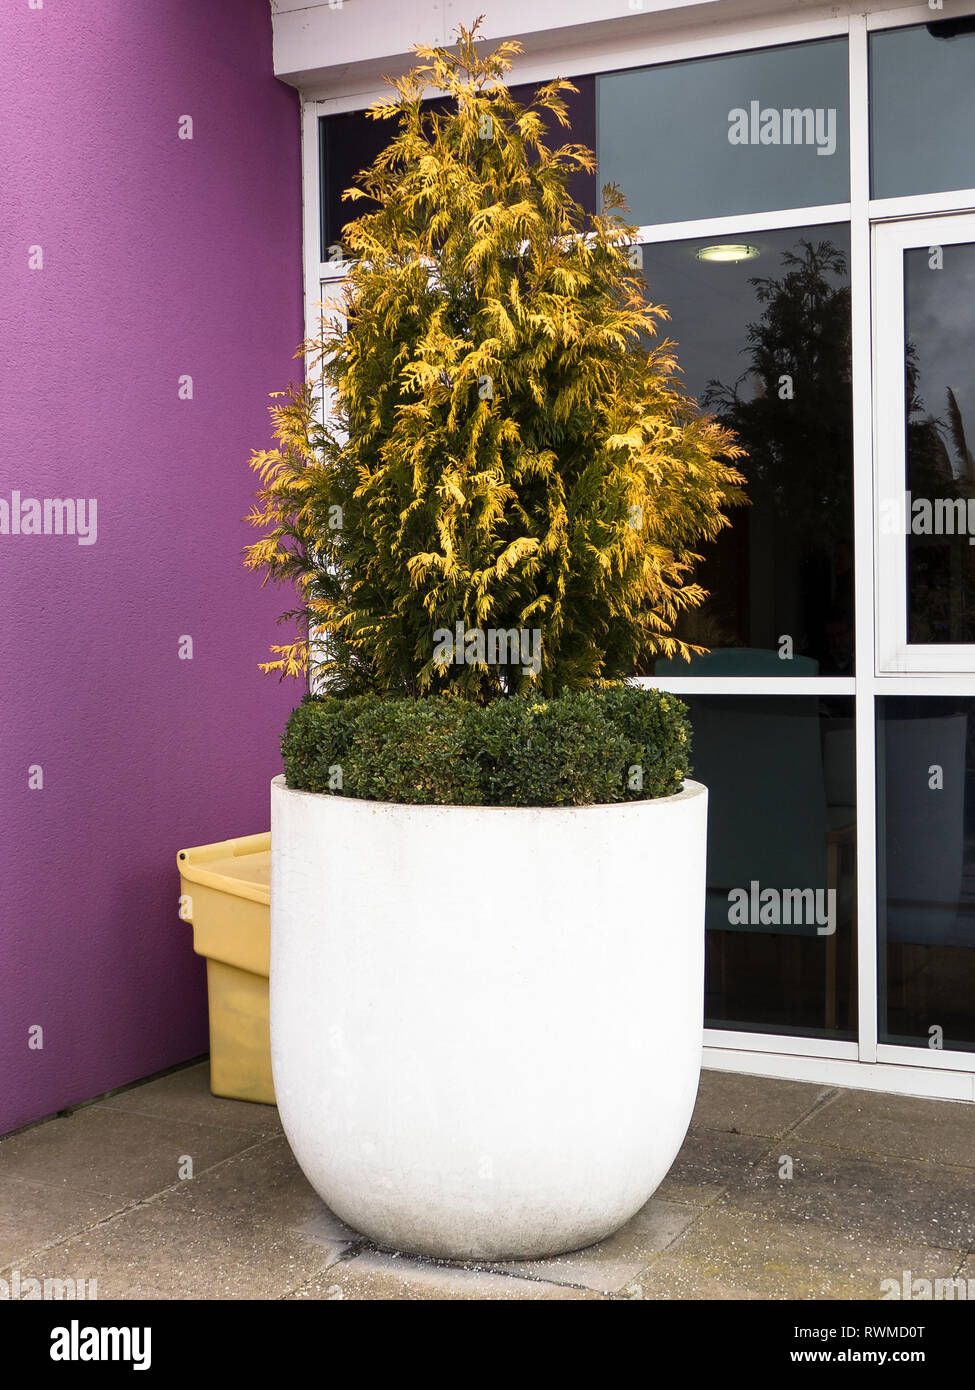 An impressive large white round planter containing a specimen golden leafed evergreen conifer surrounded by a low-growing box edging located outside t - Stock Image